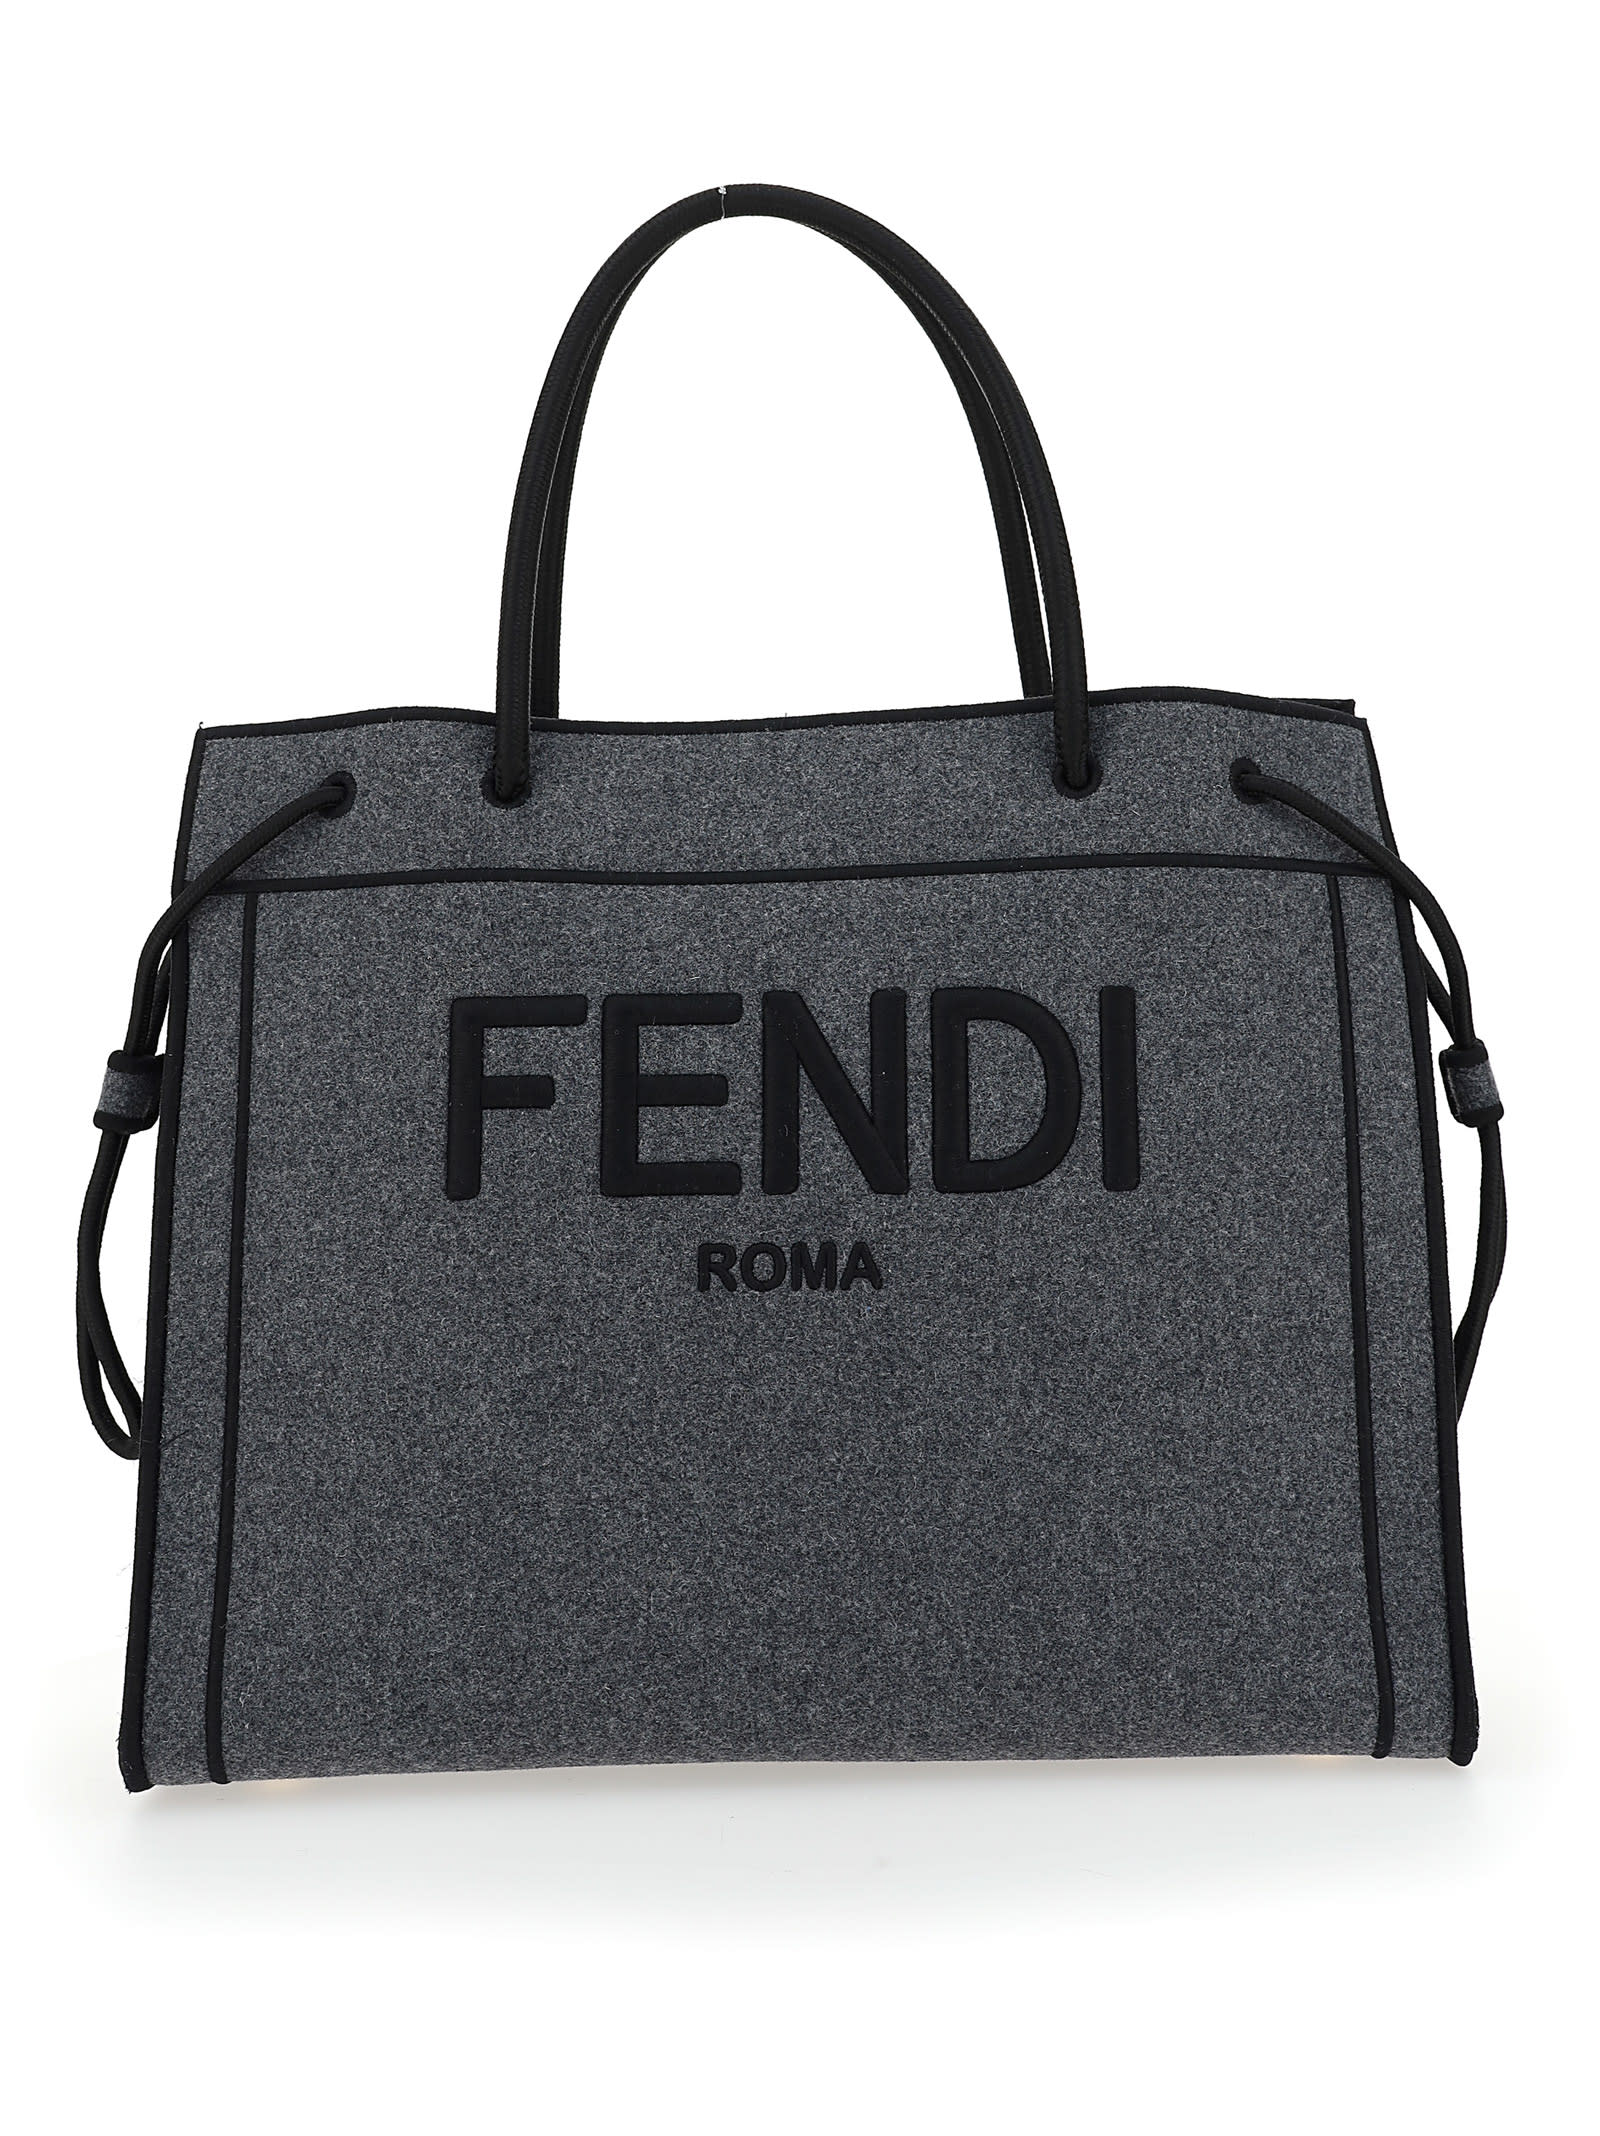 FENDI ROMA SHOPPER BAG